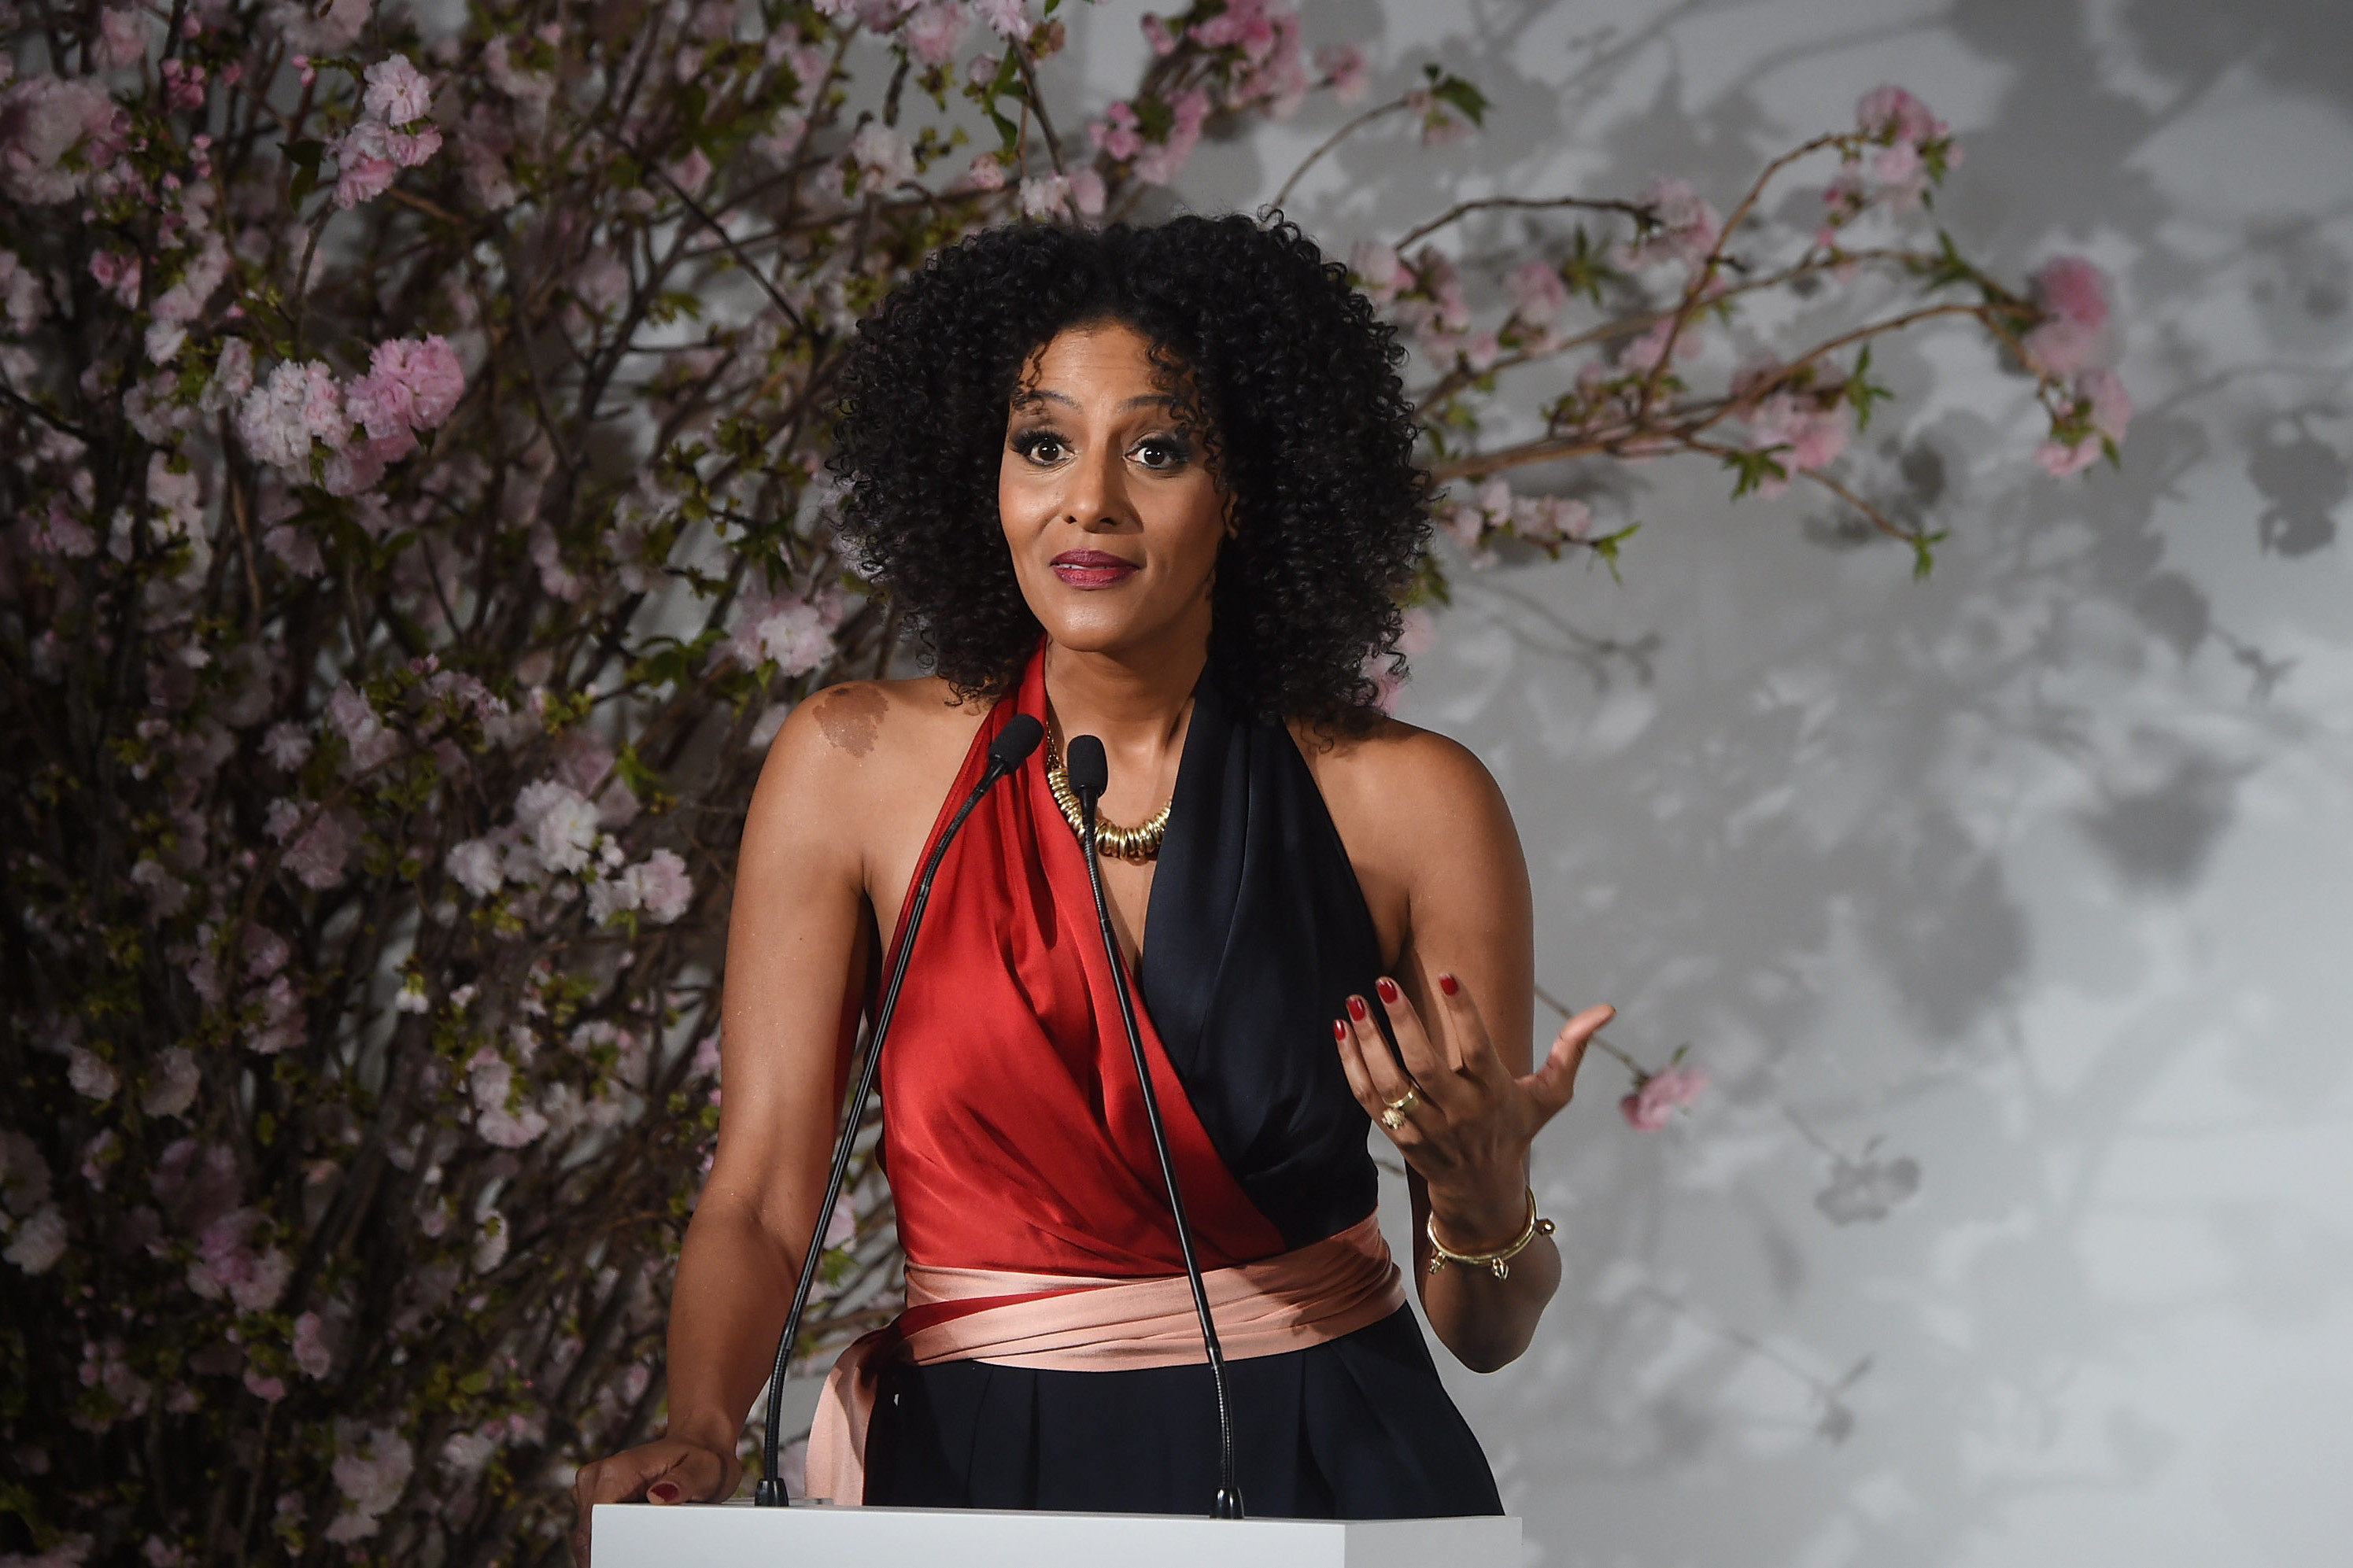 6 April 2017: Sarah Jones speaks onstage at the 2017 DVF Awards at the United Nations Headquarters in New York City. (Photograph by Jamie McCarthy/Getty Images)